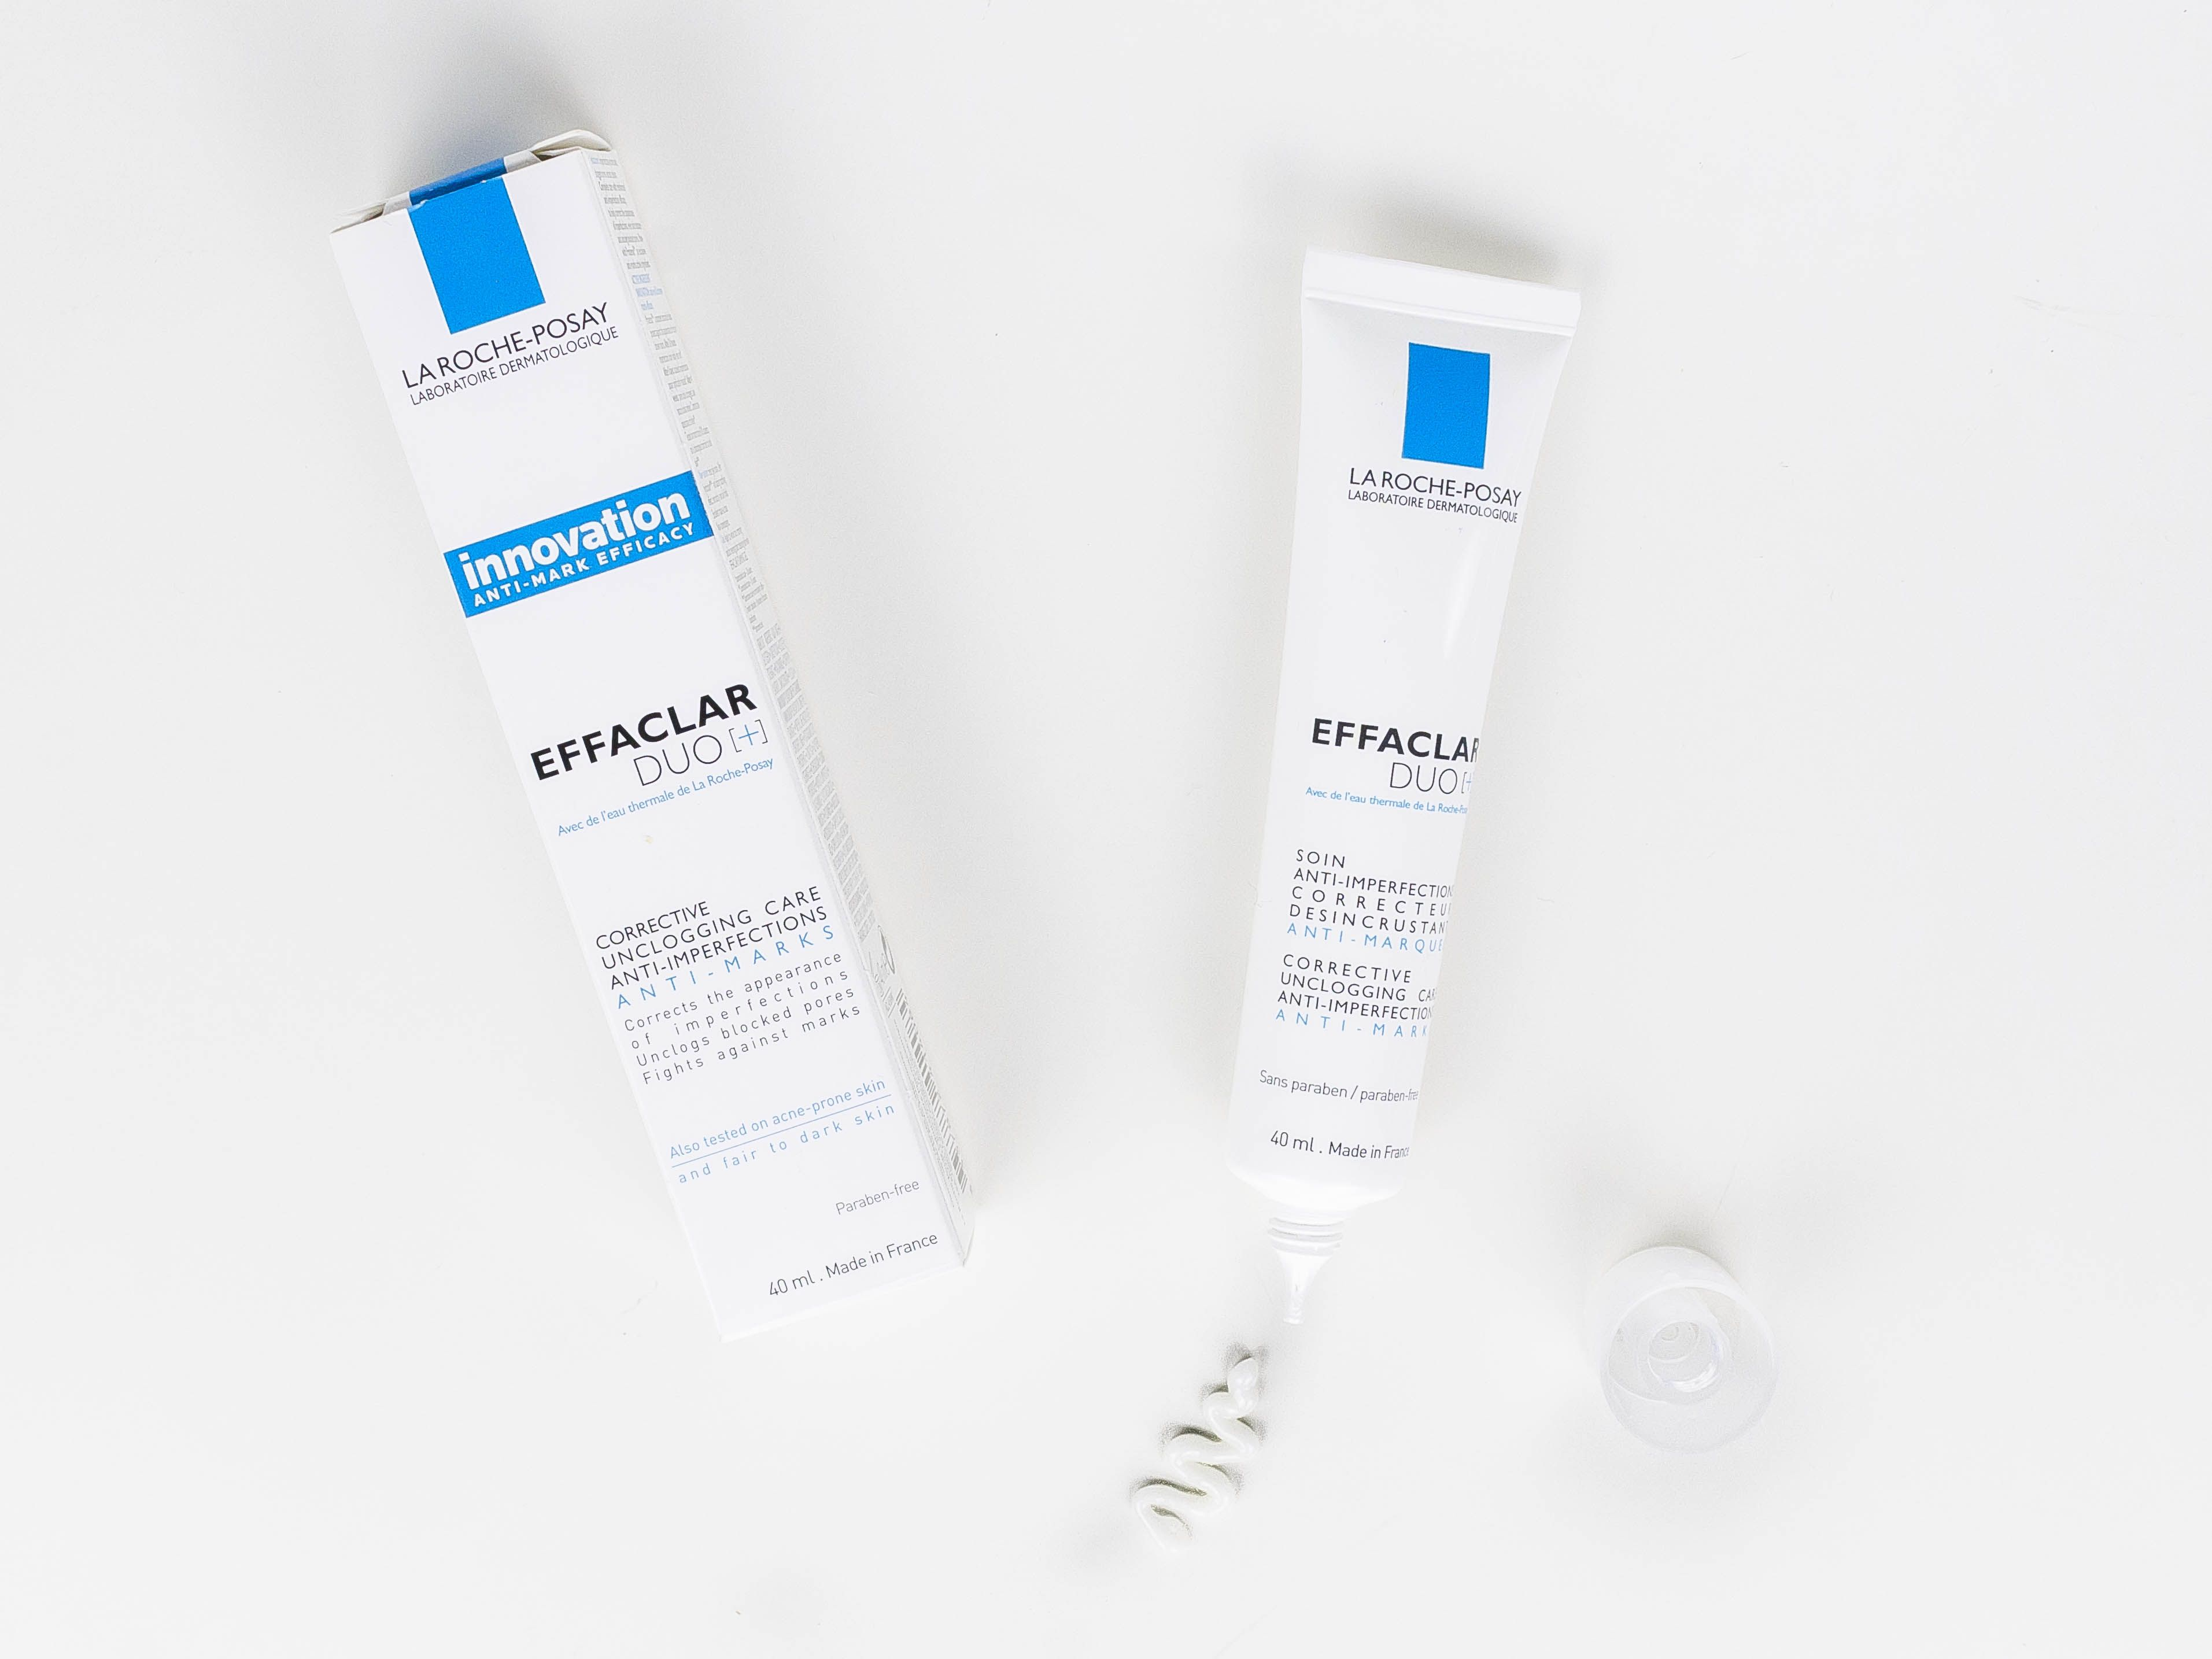 Review on La Roche-Posay Effaclar Duo + #bbloggers #larocheposay #skincare #beauty #beauté #maquillage - www.made-up.fr